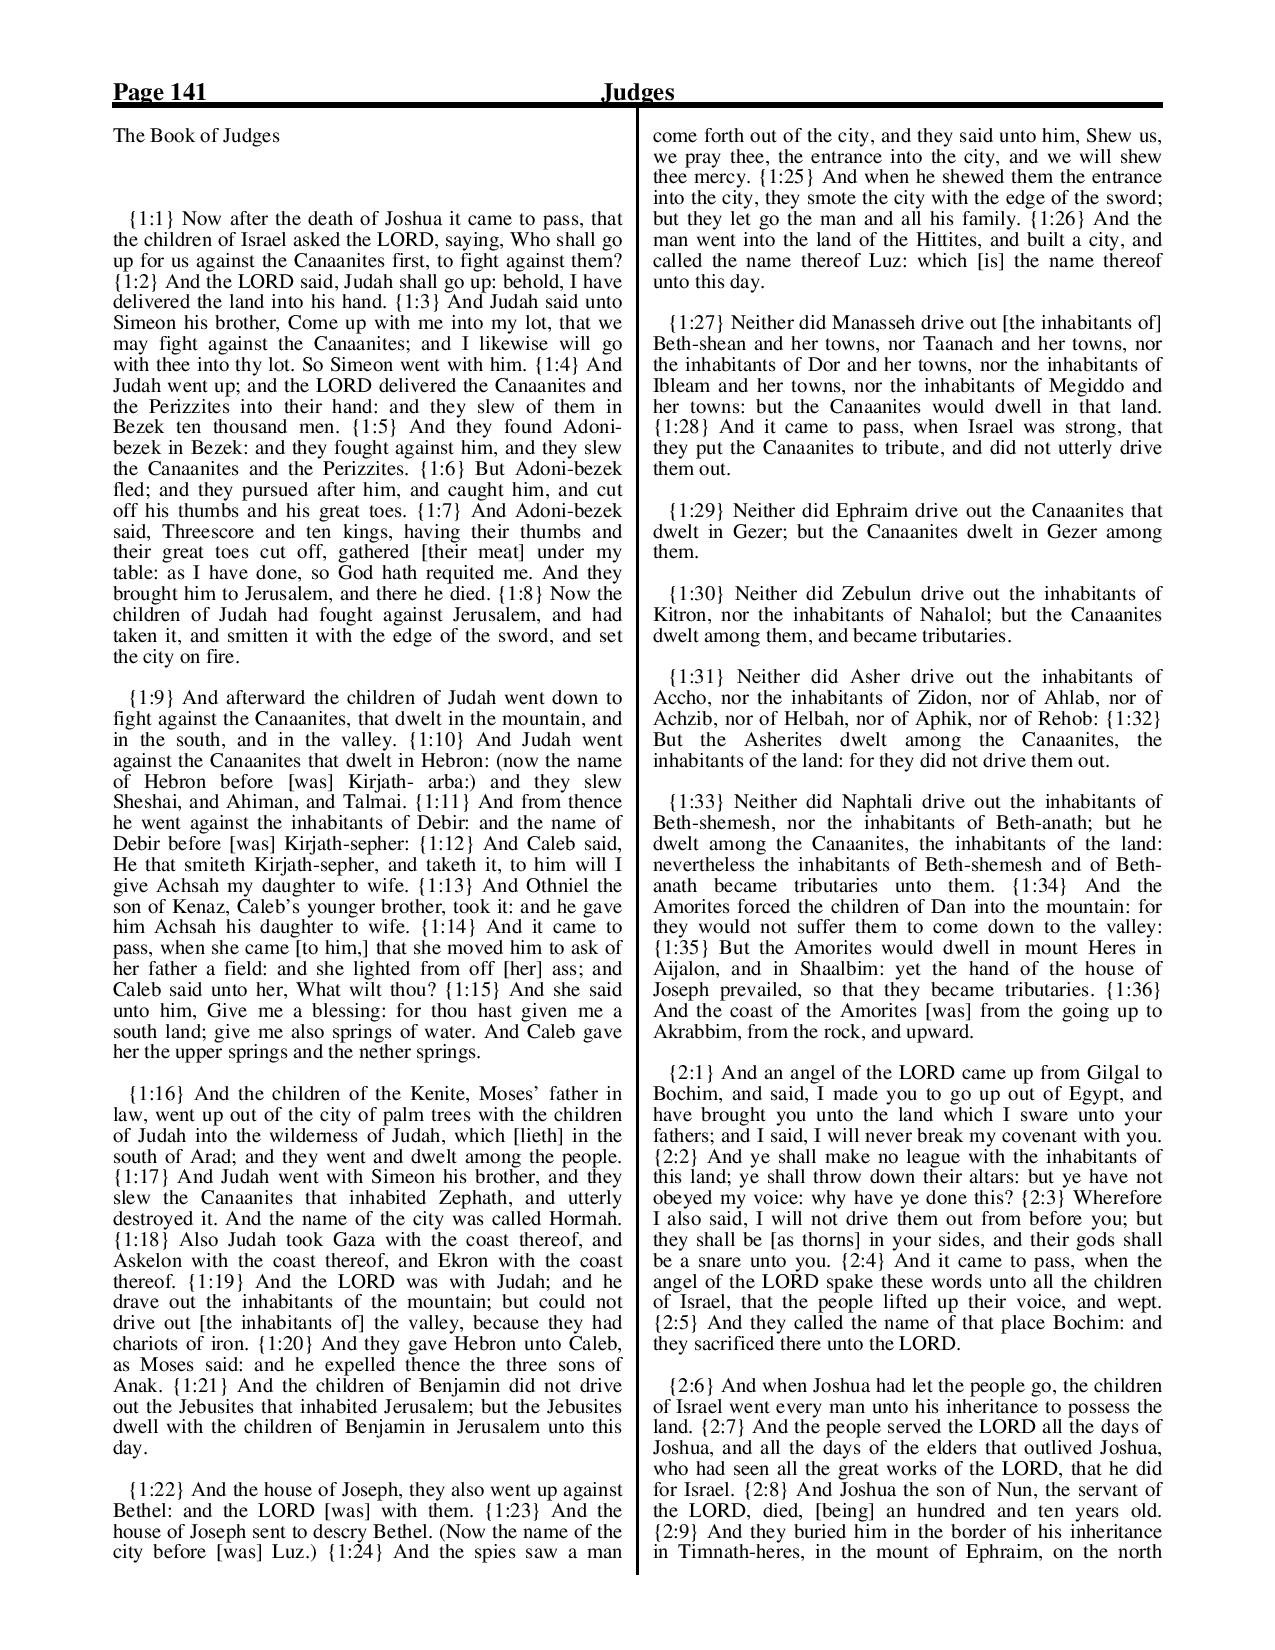 King-James-Bible-KJV-Bible-PDF-page-162